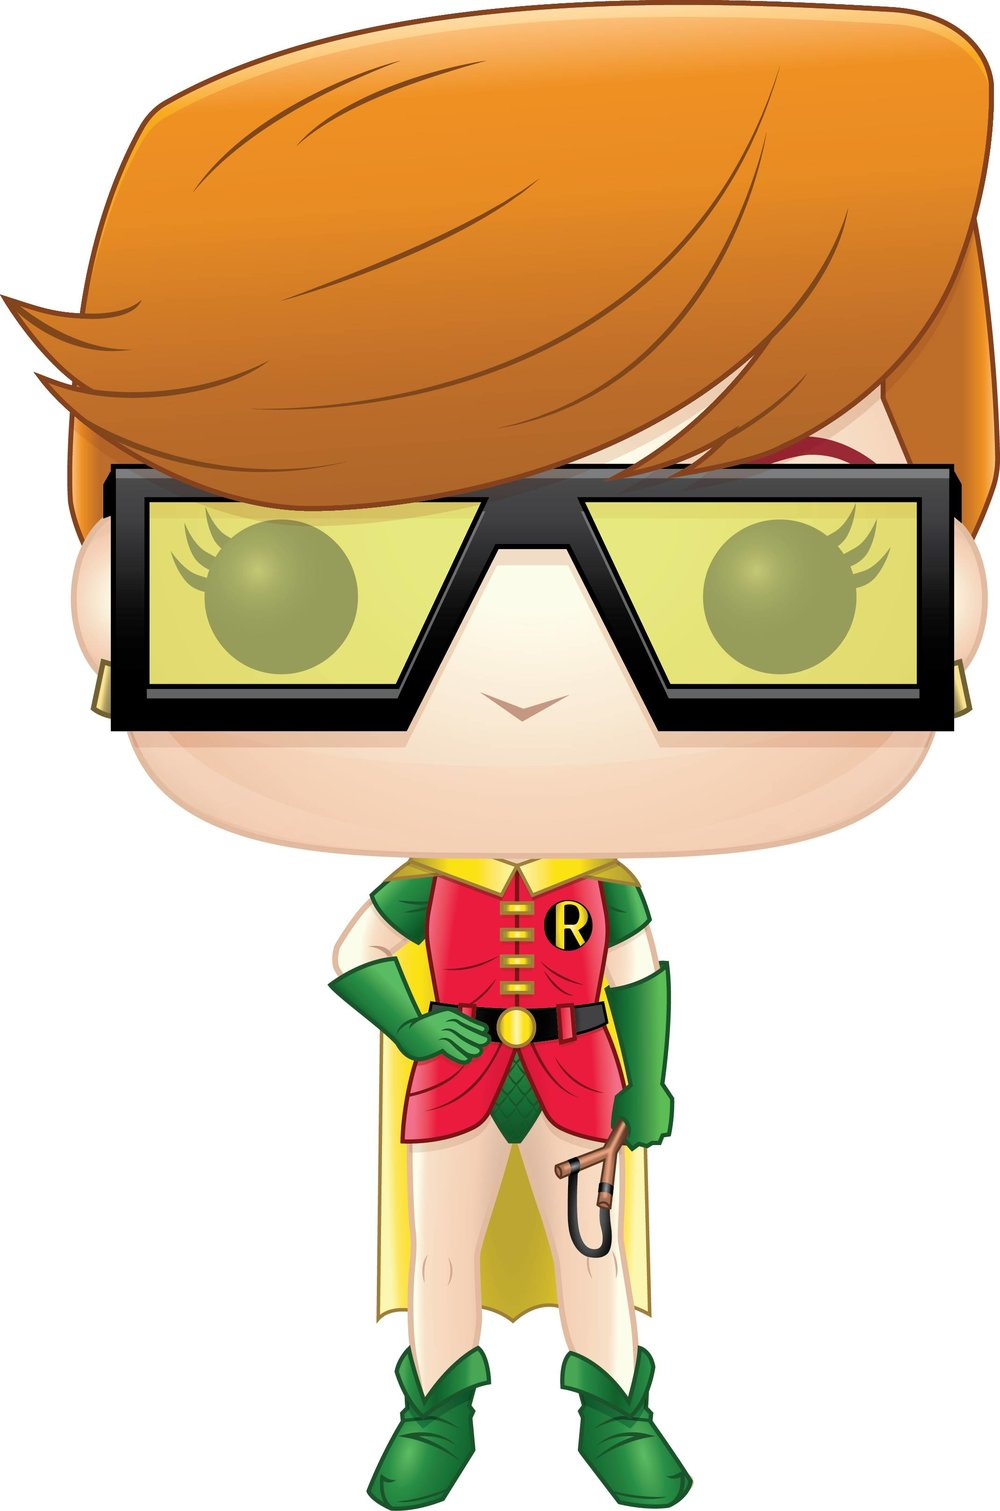 POP DC HEROES DKR CARRIE KELLY ROBIN PX VINYL FIG.jpg